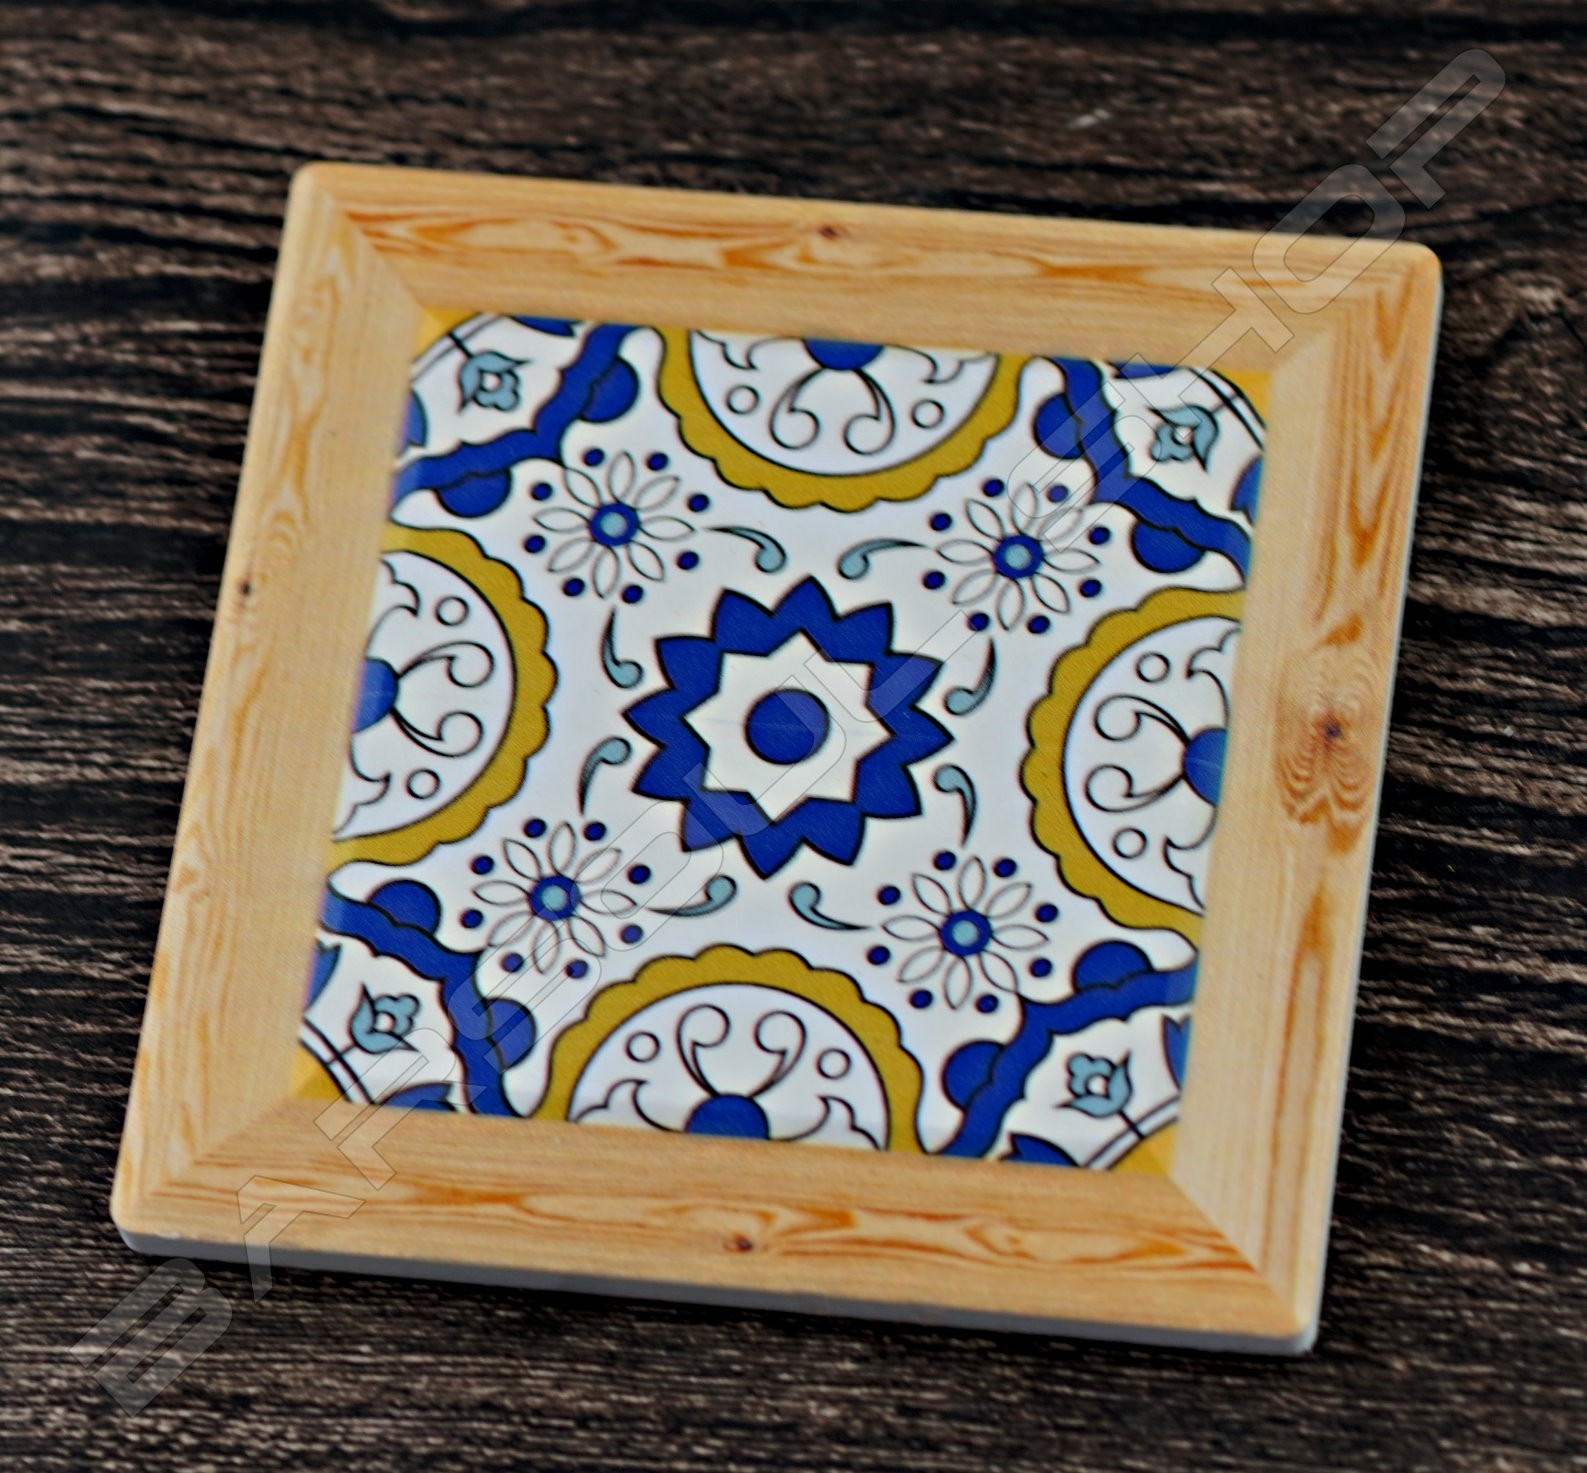 方形陶瓷杯墊(B) Square ceramics coaster